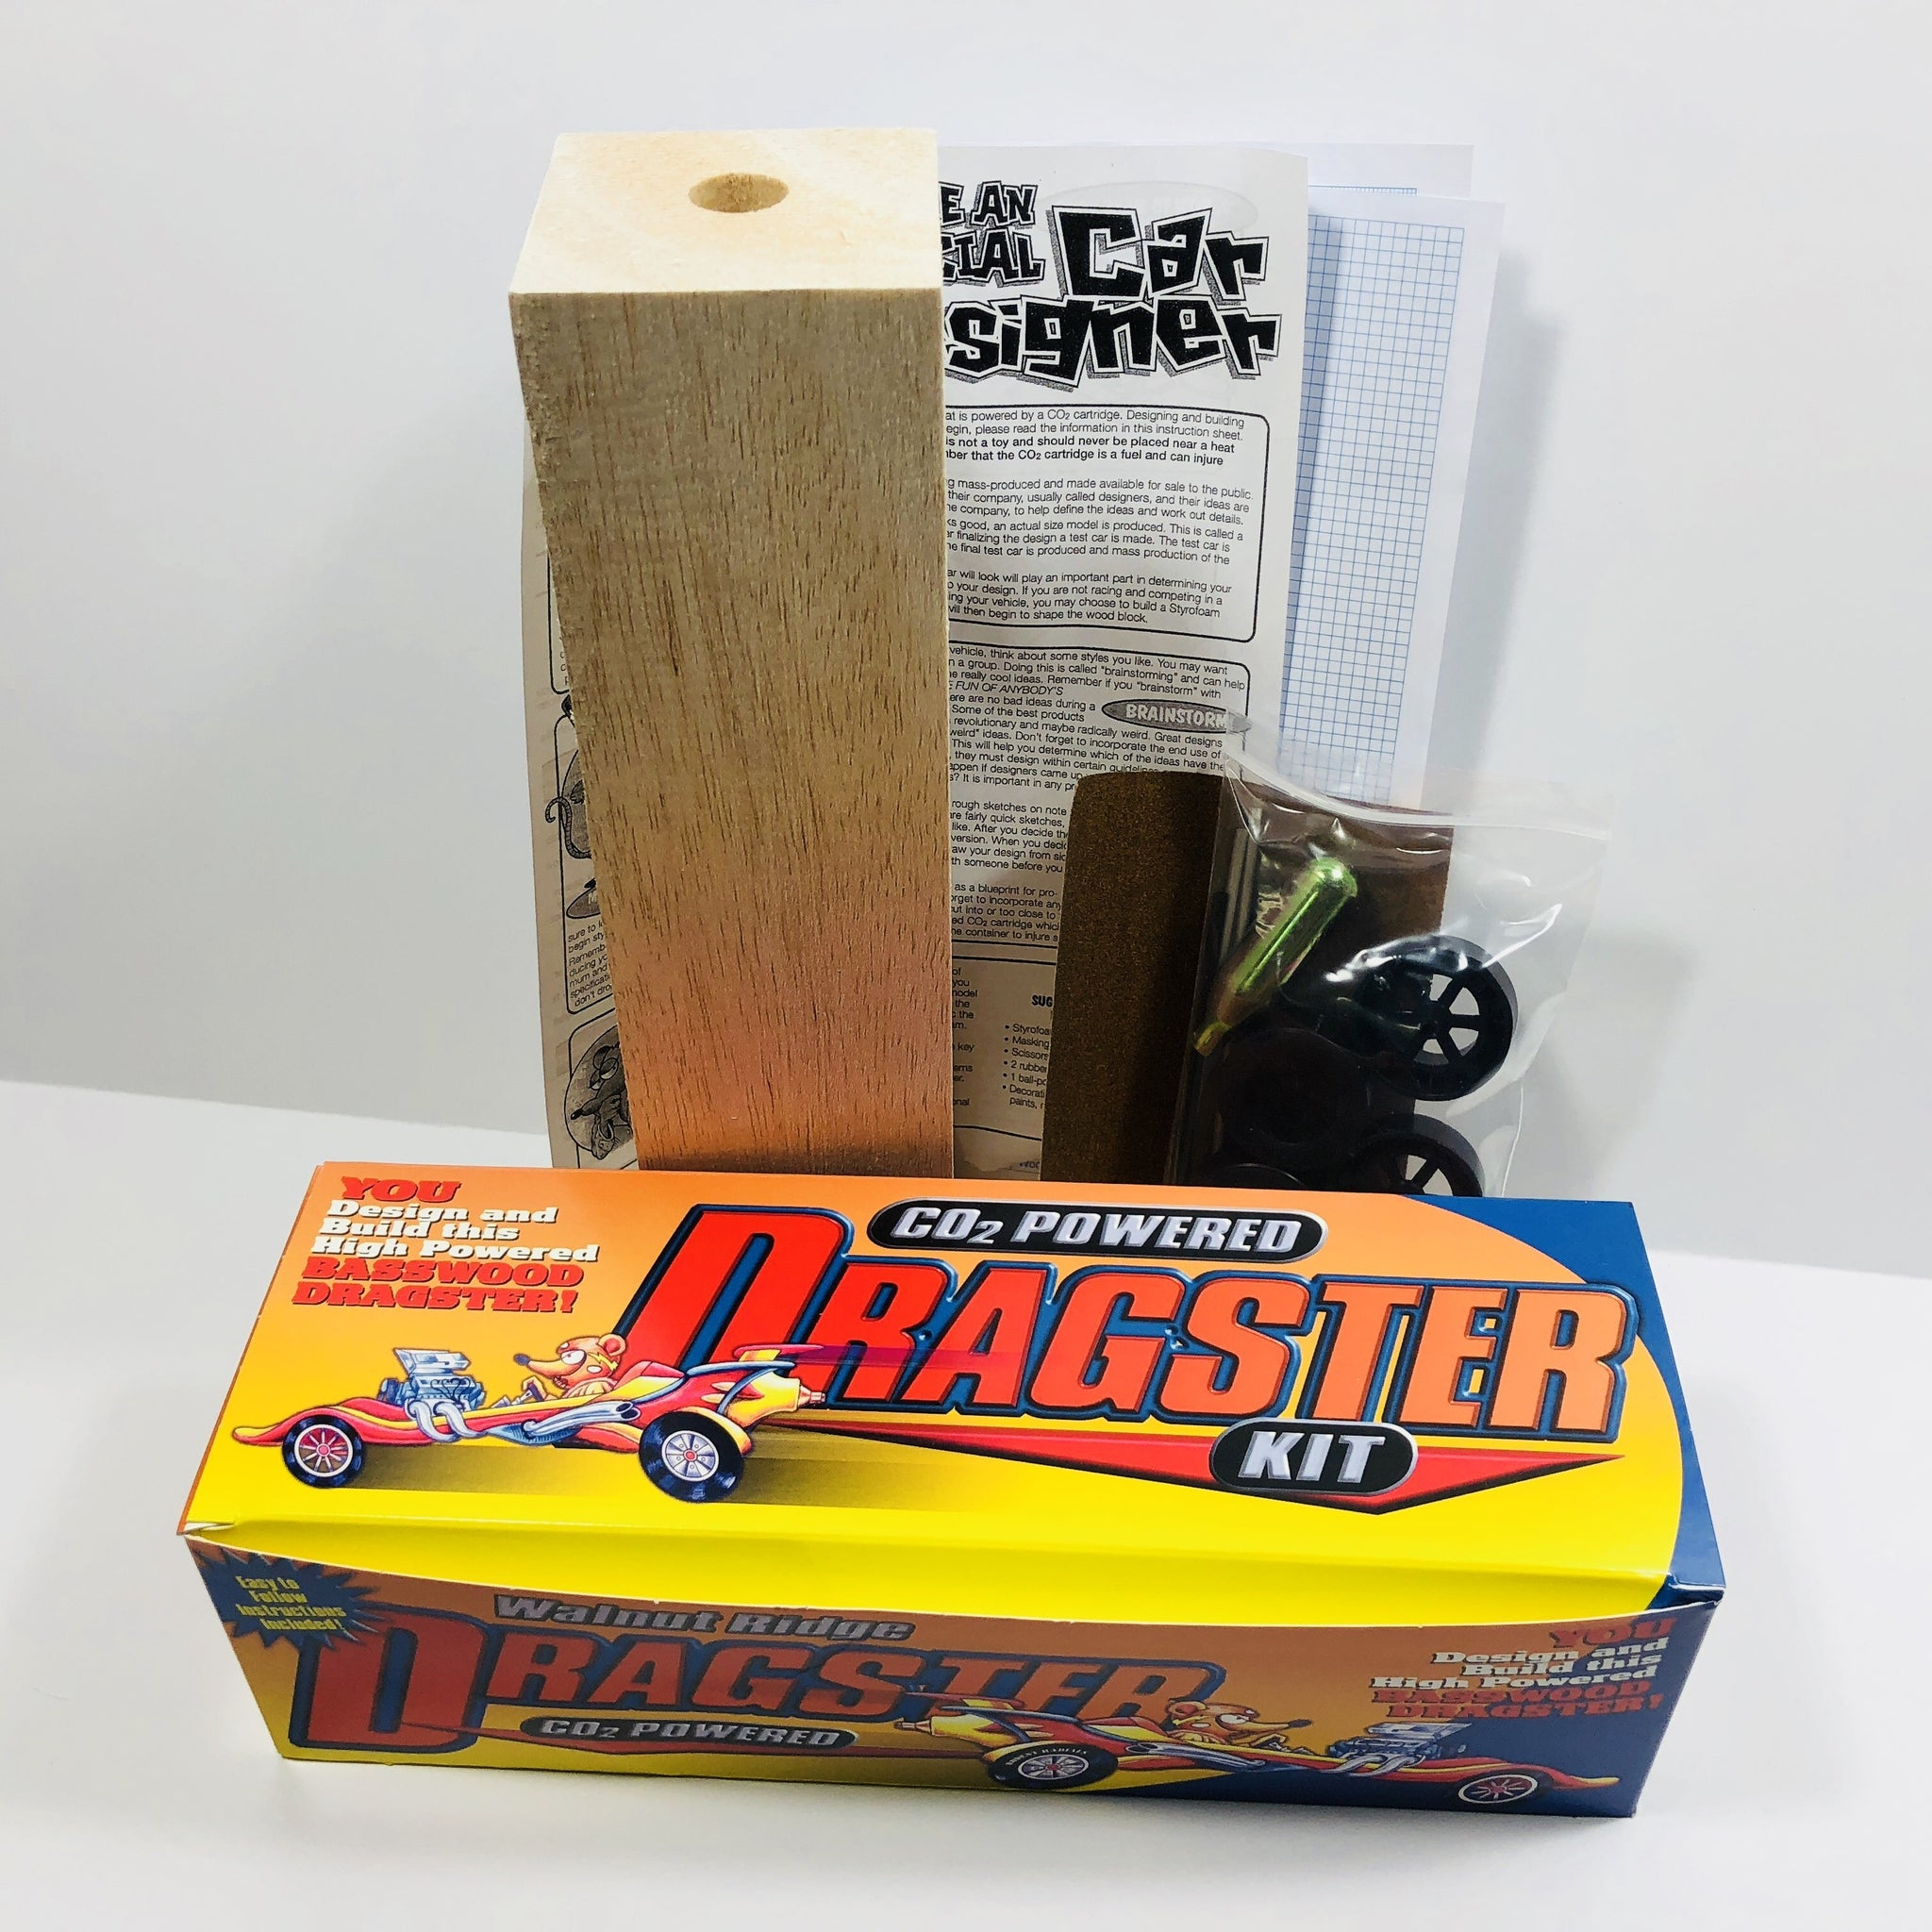 Balsa Truck & Van Dragster Kit (Co2)